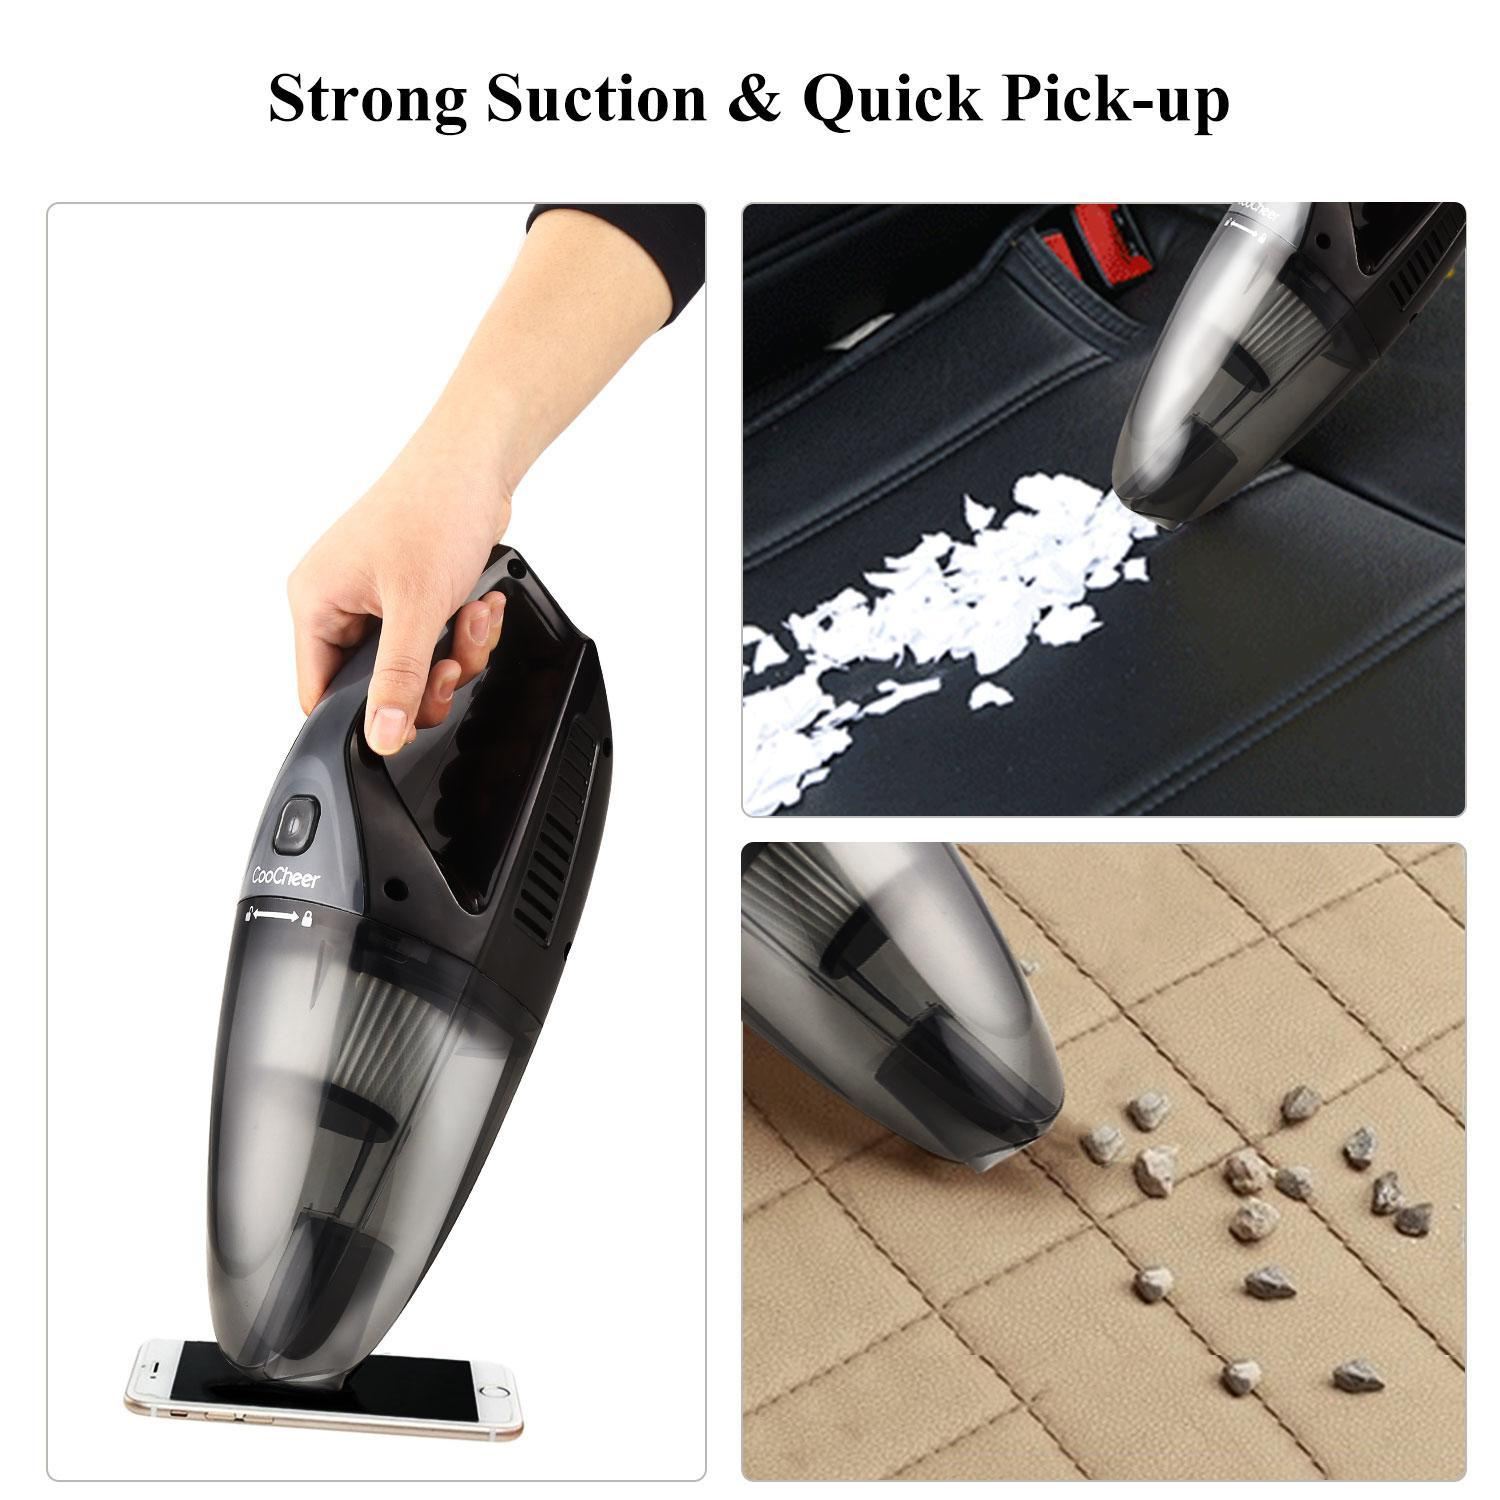 Portable Cordless Handheld Vacuum Cleaner Dustbuster for Home Office Auto Car DADEAYS